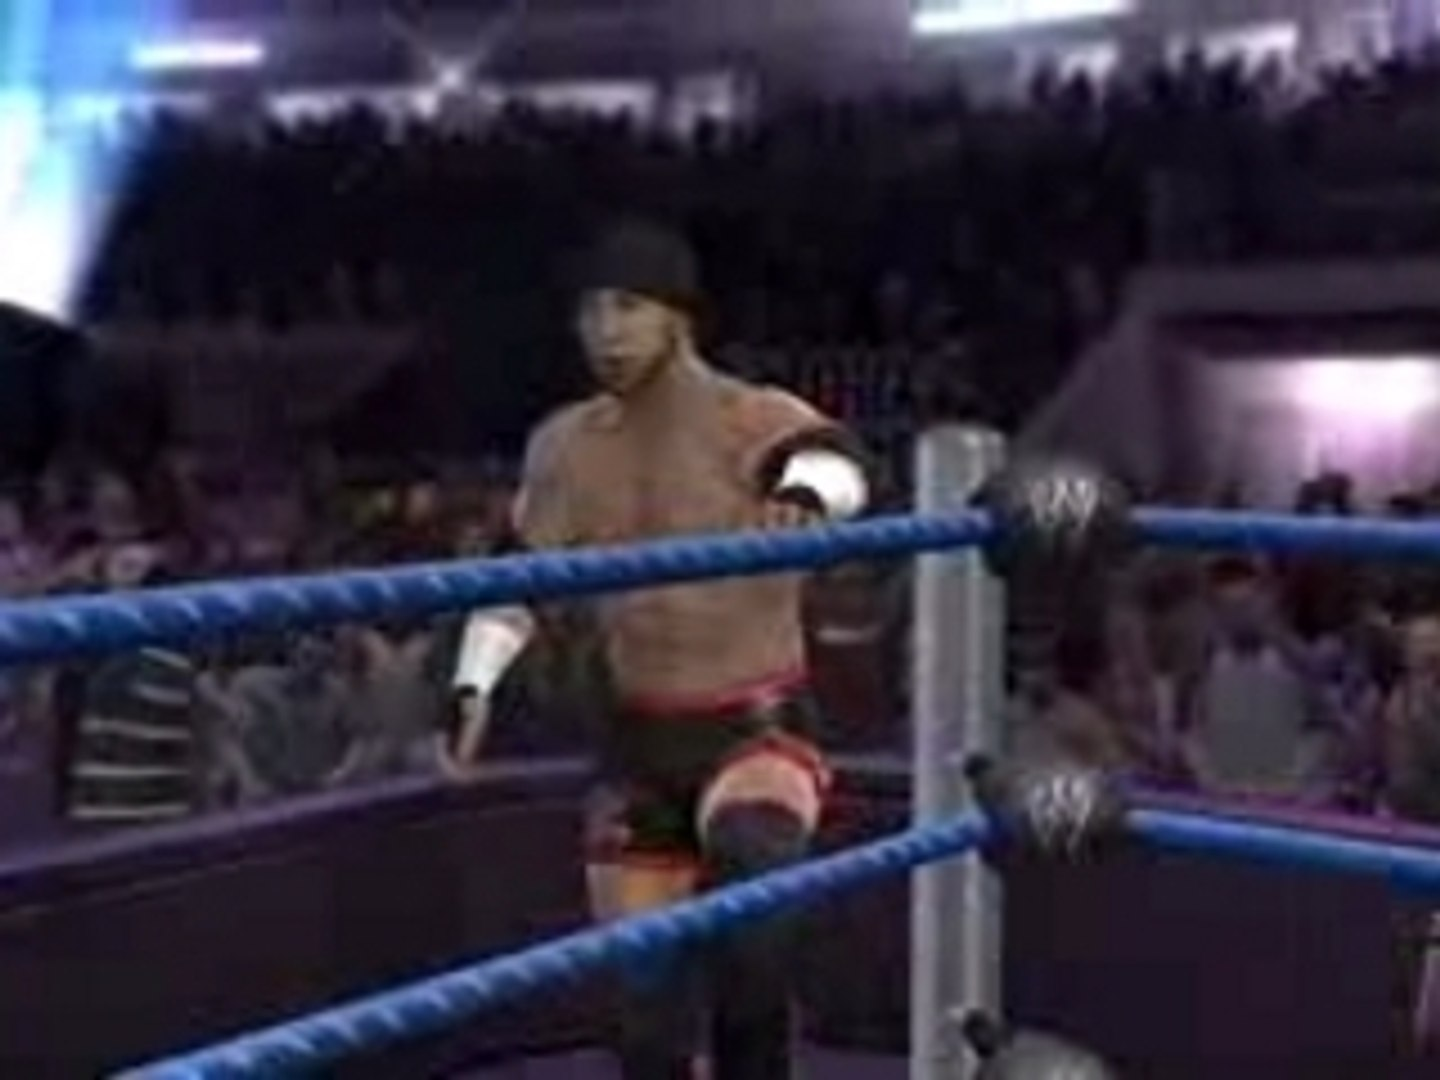 Smackdown vs raw 2008 gregory helms entrance ps3